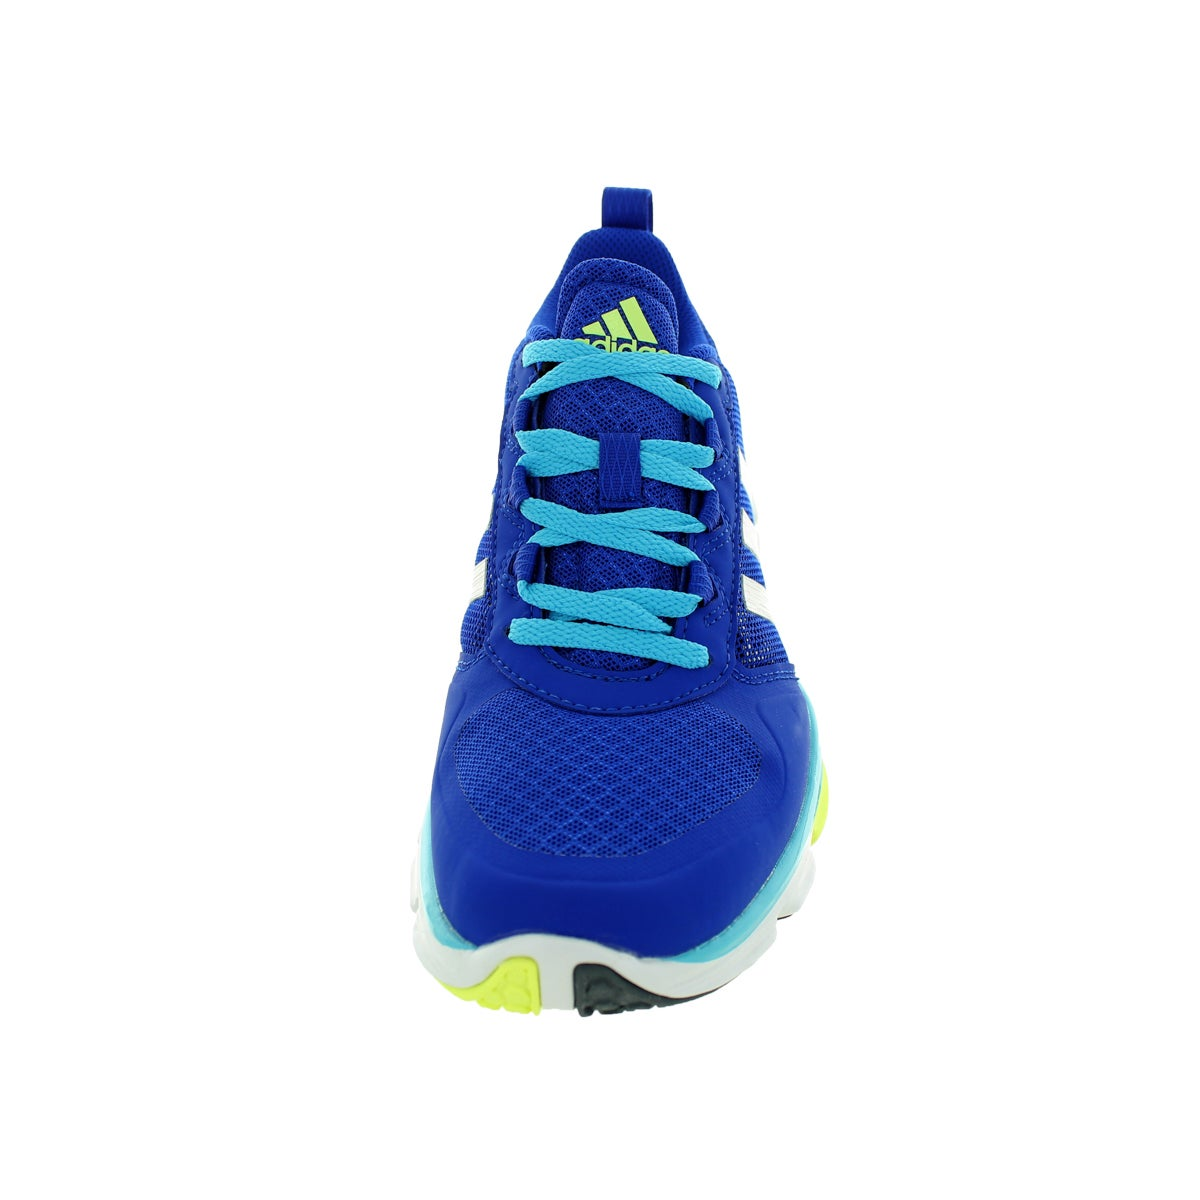 super popular 080fc 60764 Shop Adidas Womens Speed Trainer 2 W BoBlueverBrcyan Training Shoe - Free  Shipping Today - Overstock - 12175240